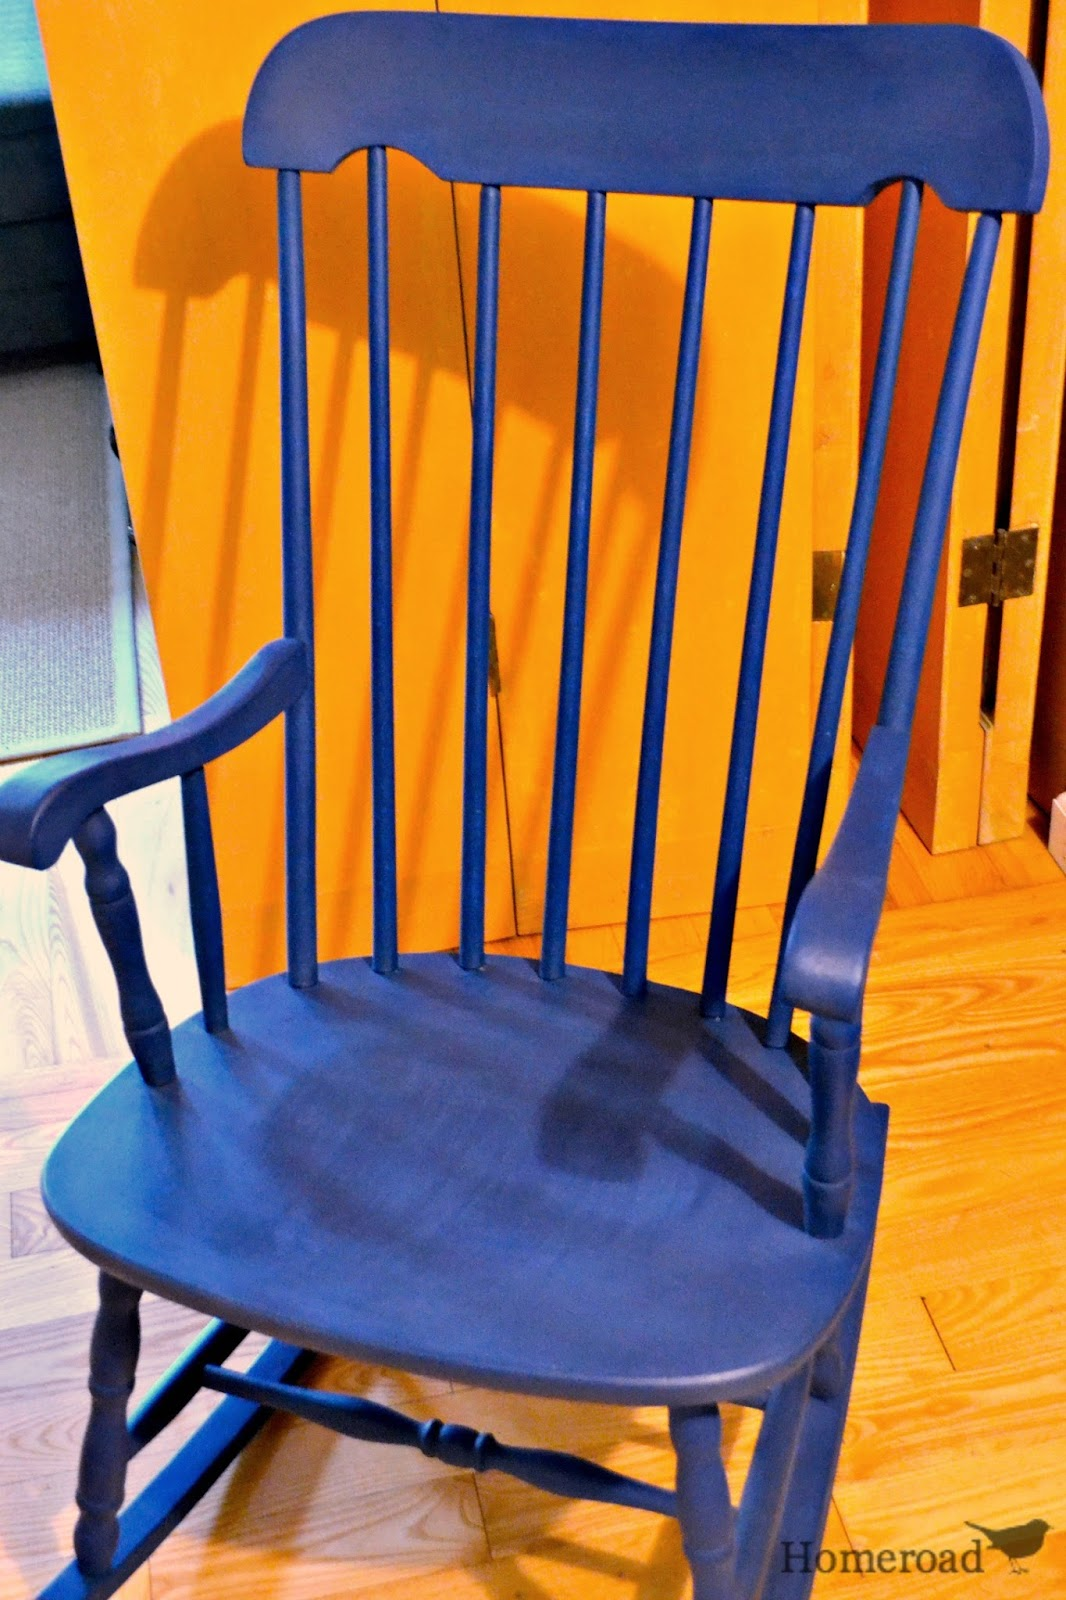 Navy Rocking Chair Rocking Chair With Grain Sack Cushion Homeroad